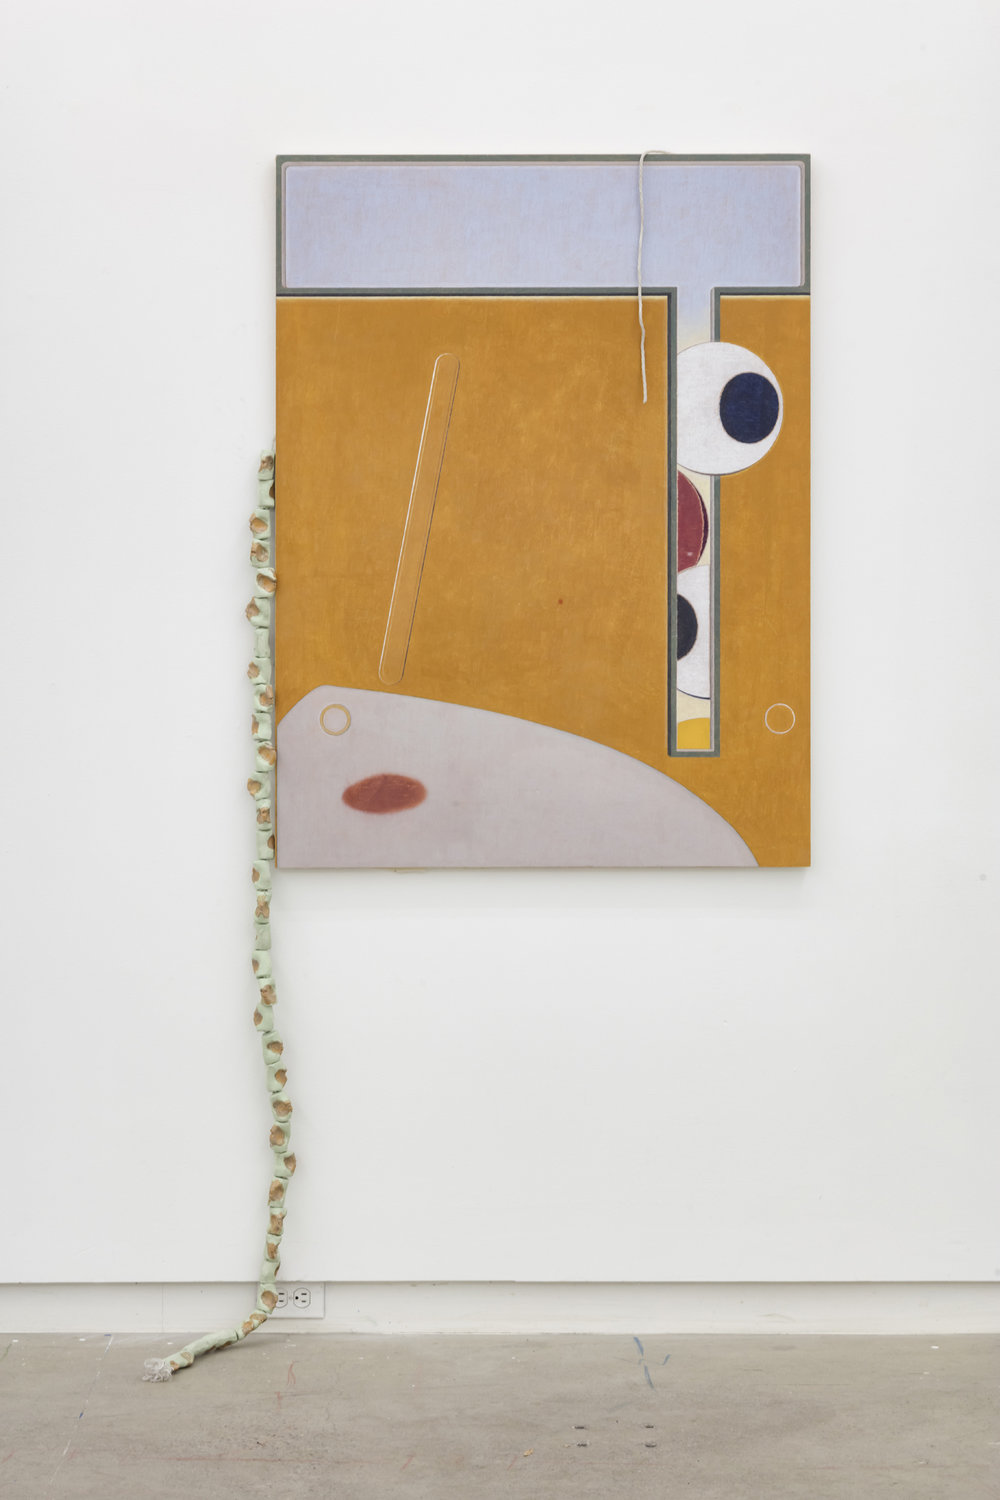 Marlon Kroll,  A Room Is A Thing,  2019, coloured pencil on gessoed muslin mounted on panel, glazed ceramic and rope, 48 x 36 inches